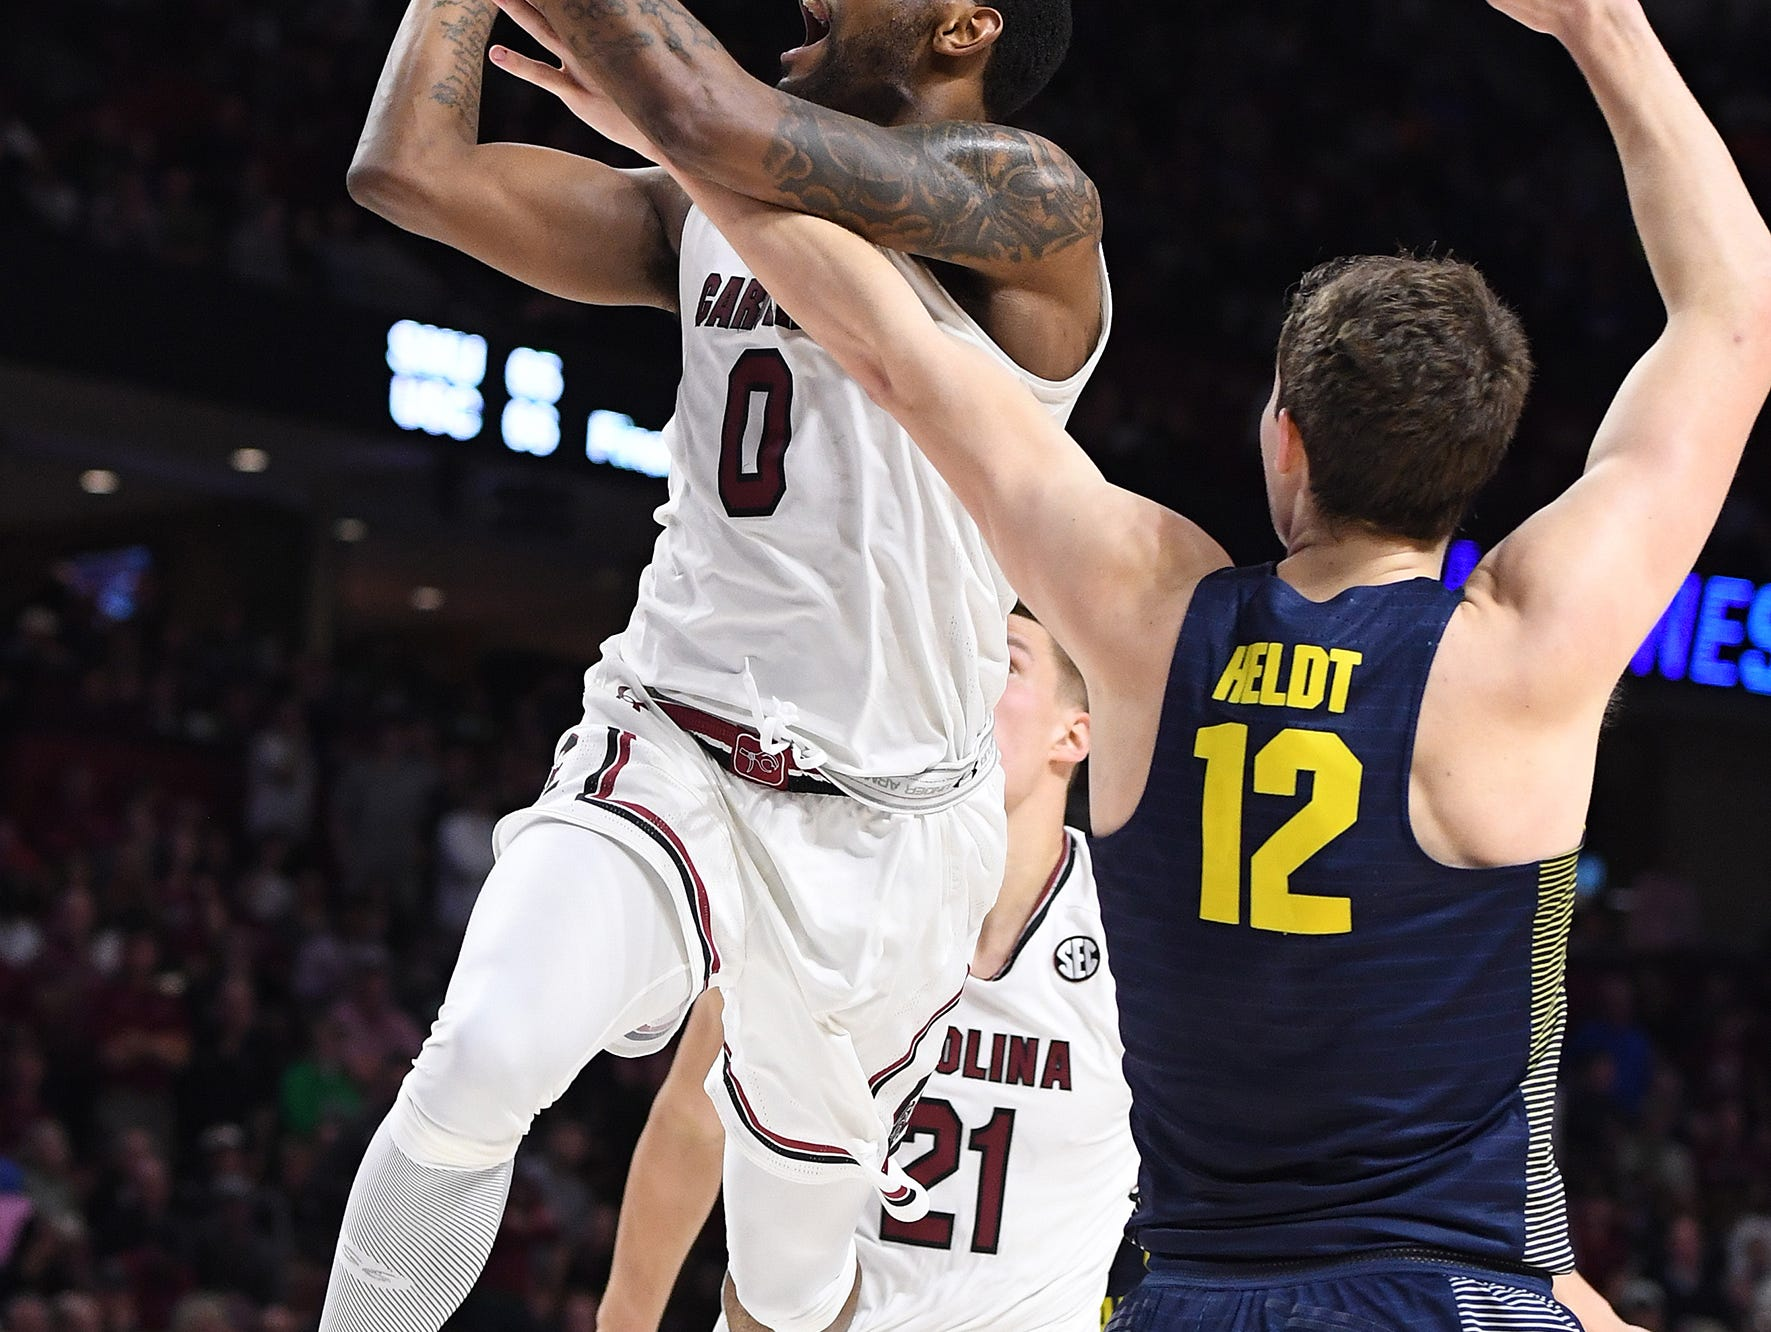 Marquette center Matt Heldt (12) fouls South Carolina guard Sindarius Thornwell (0) during the 1st round of the NCAA Tournament at Bon Secours Wellness Arena in downtown Greenville on Friday, March 17, 2017.